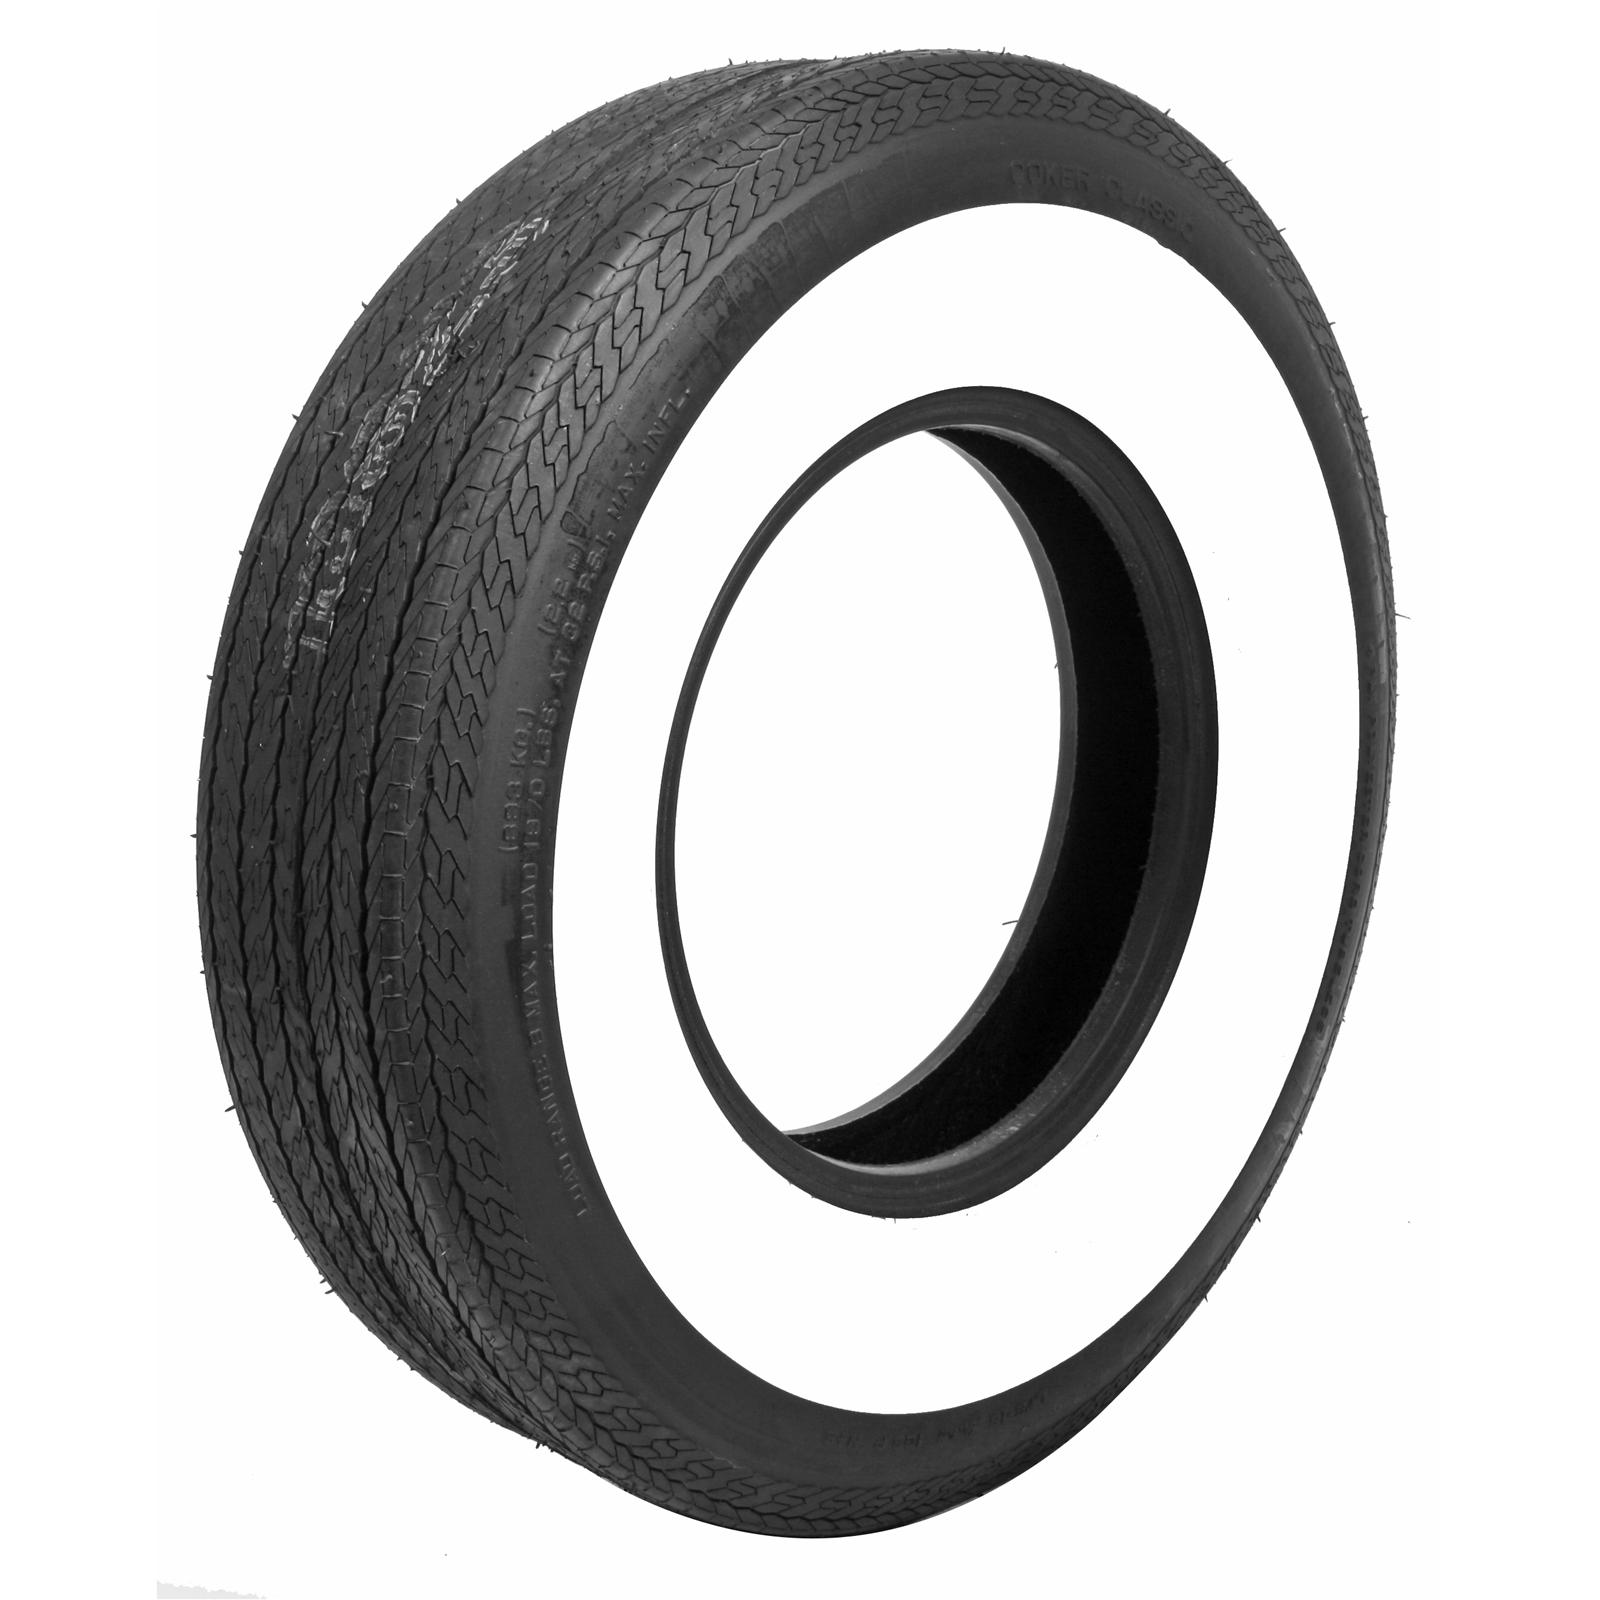 Bias Ply Tires >> Coker Classic Bias Ply Tires 62950